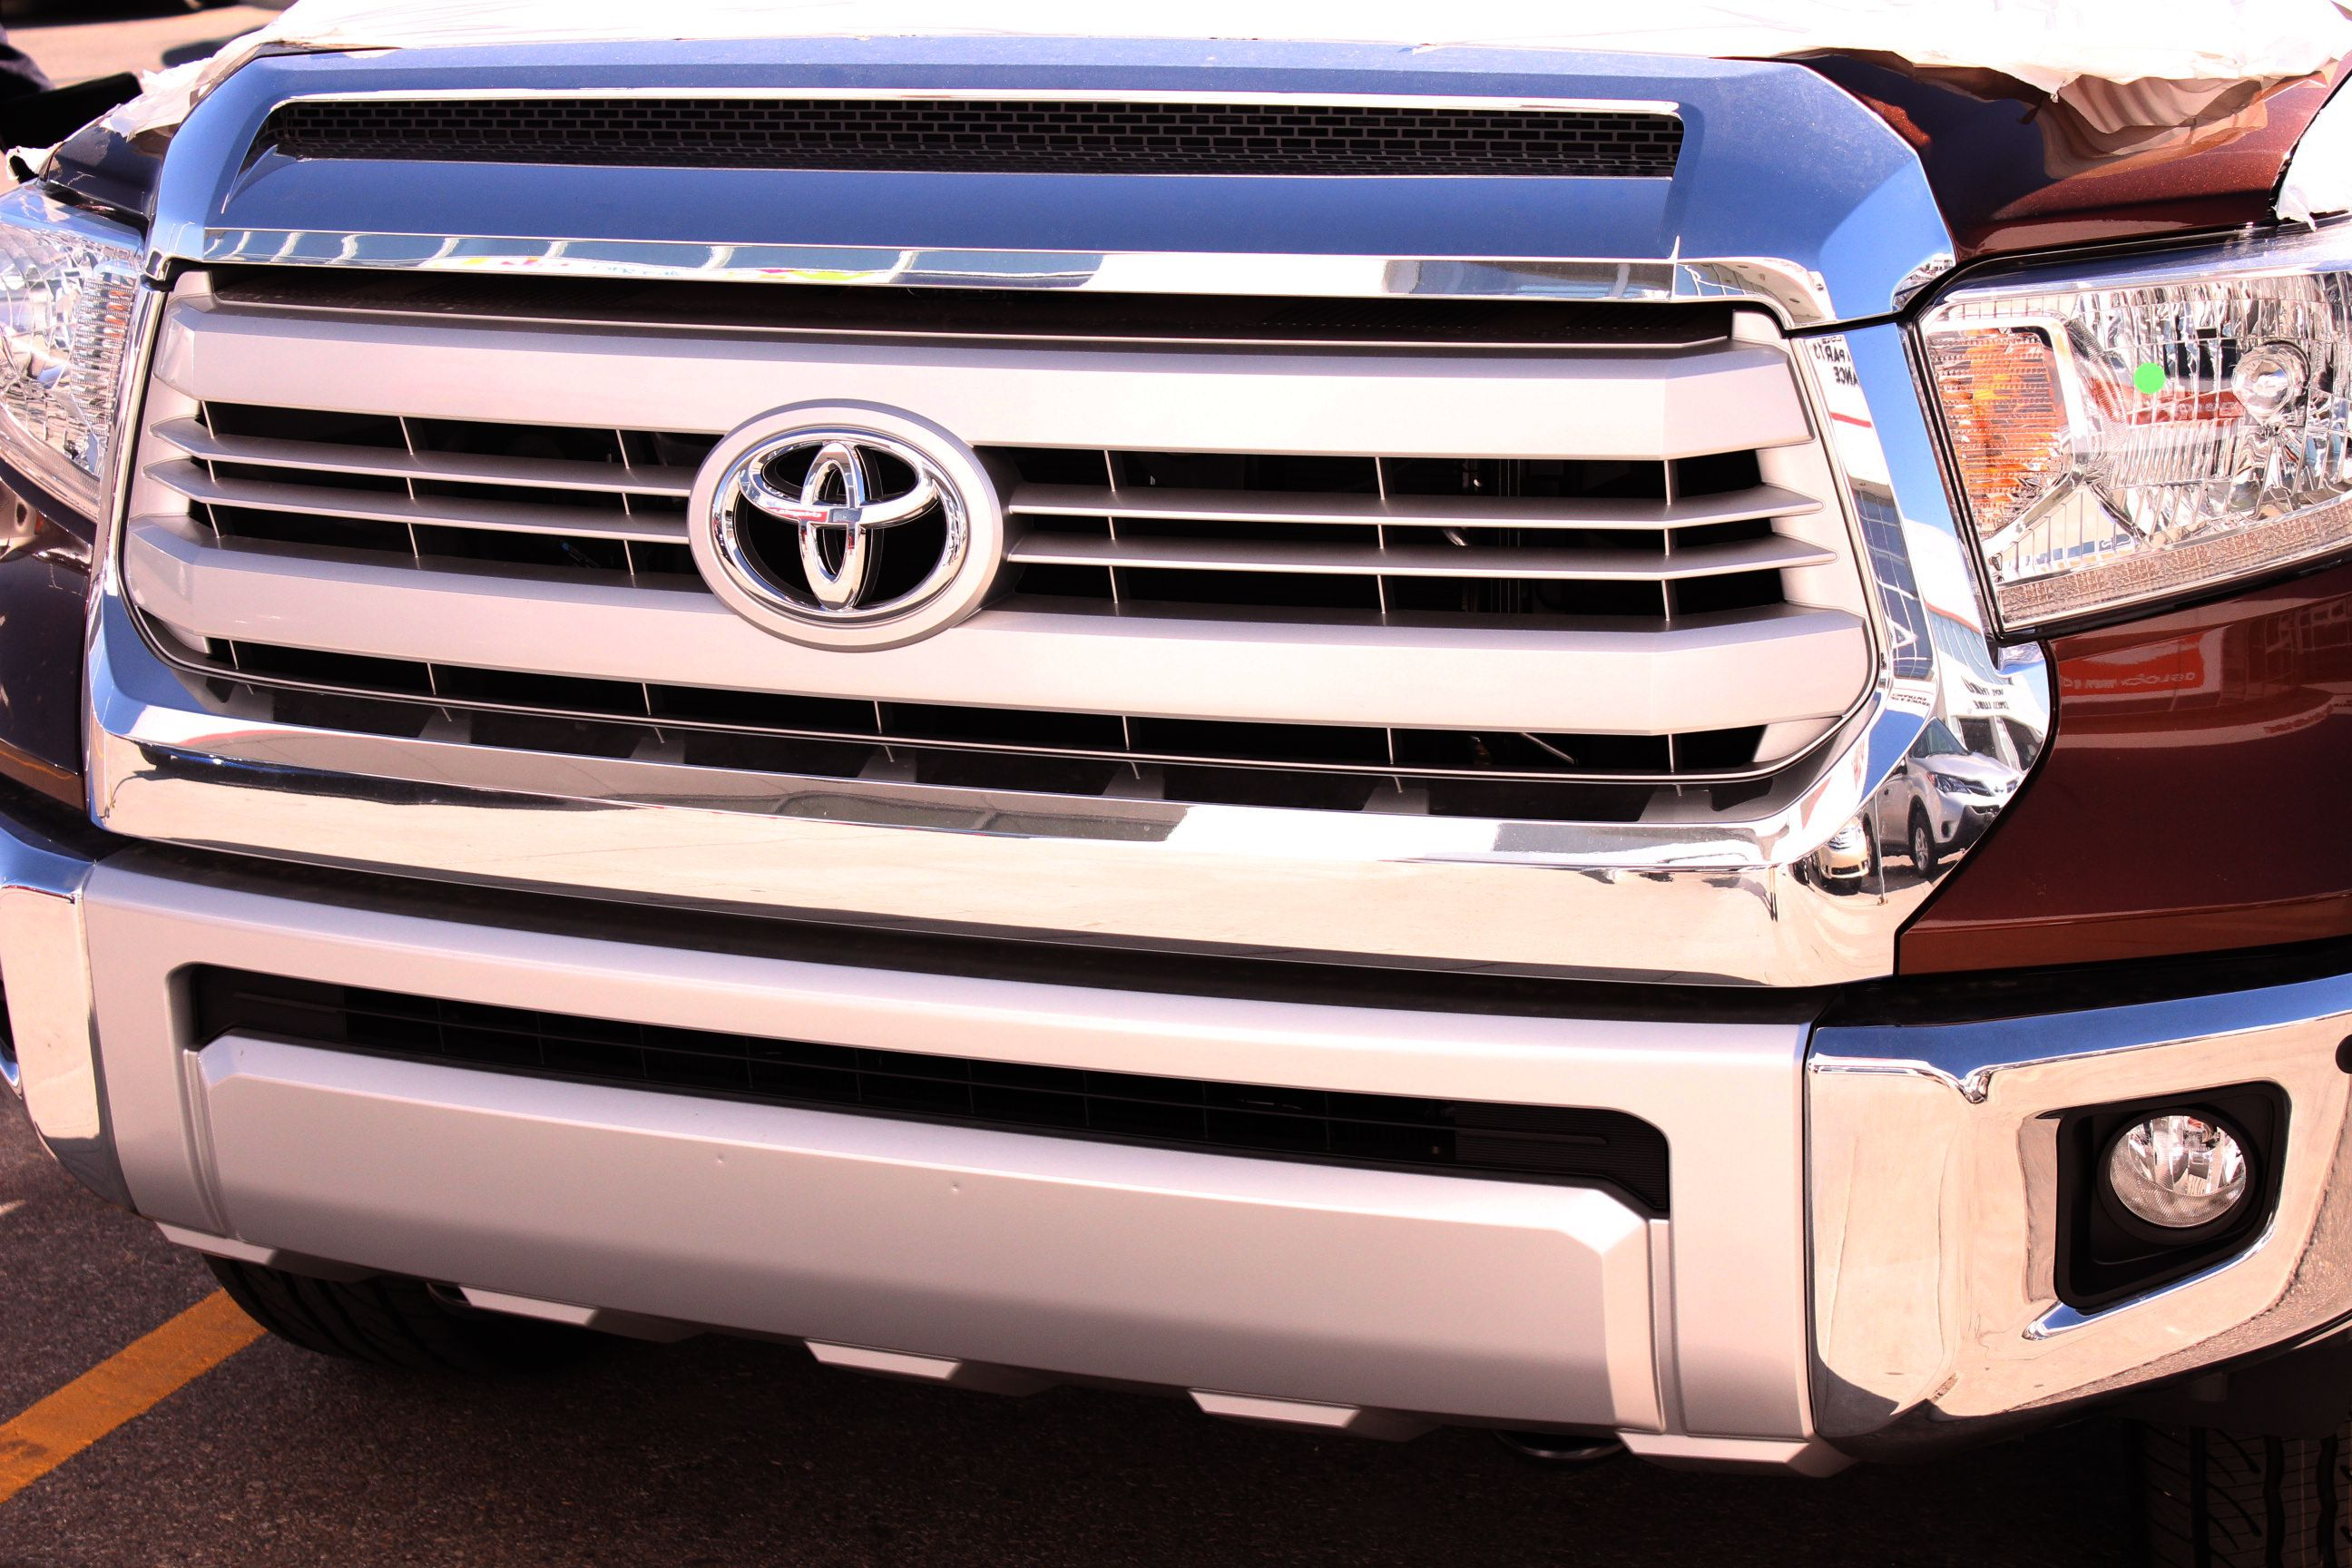 2014 toyota tundra front grille badge chrome 1794 edition